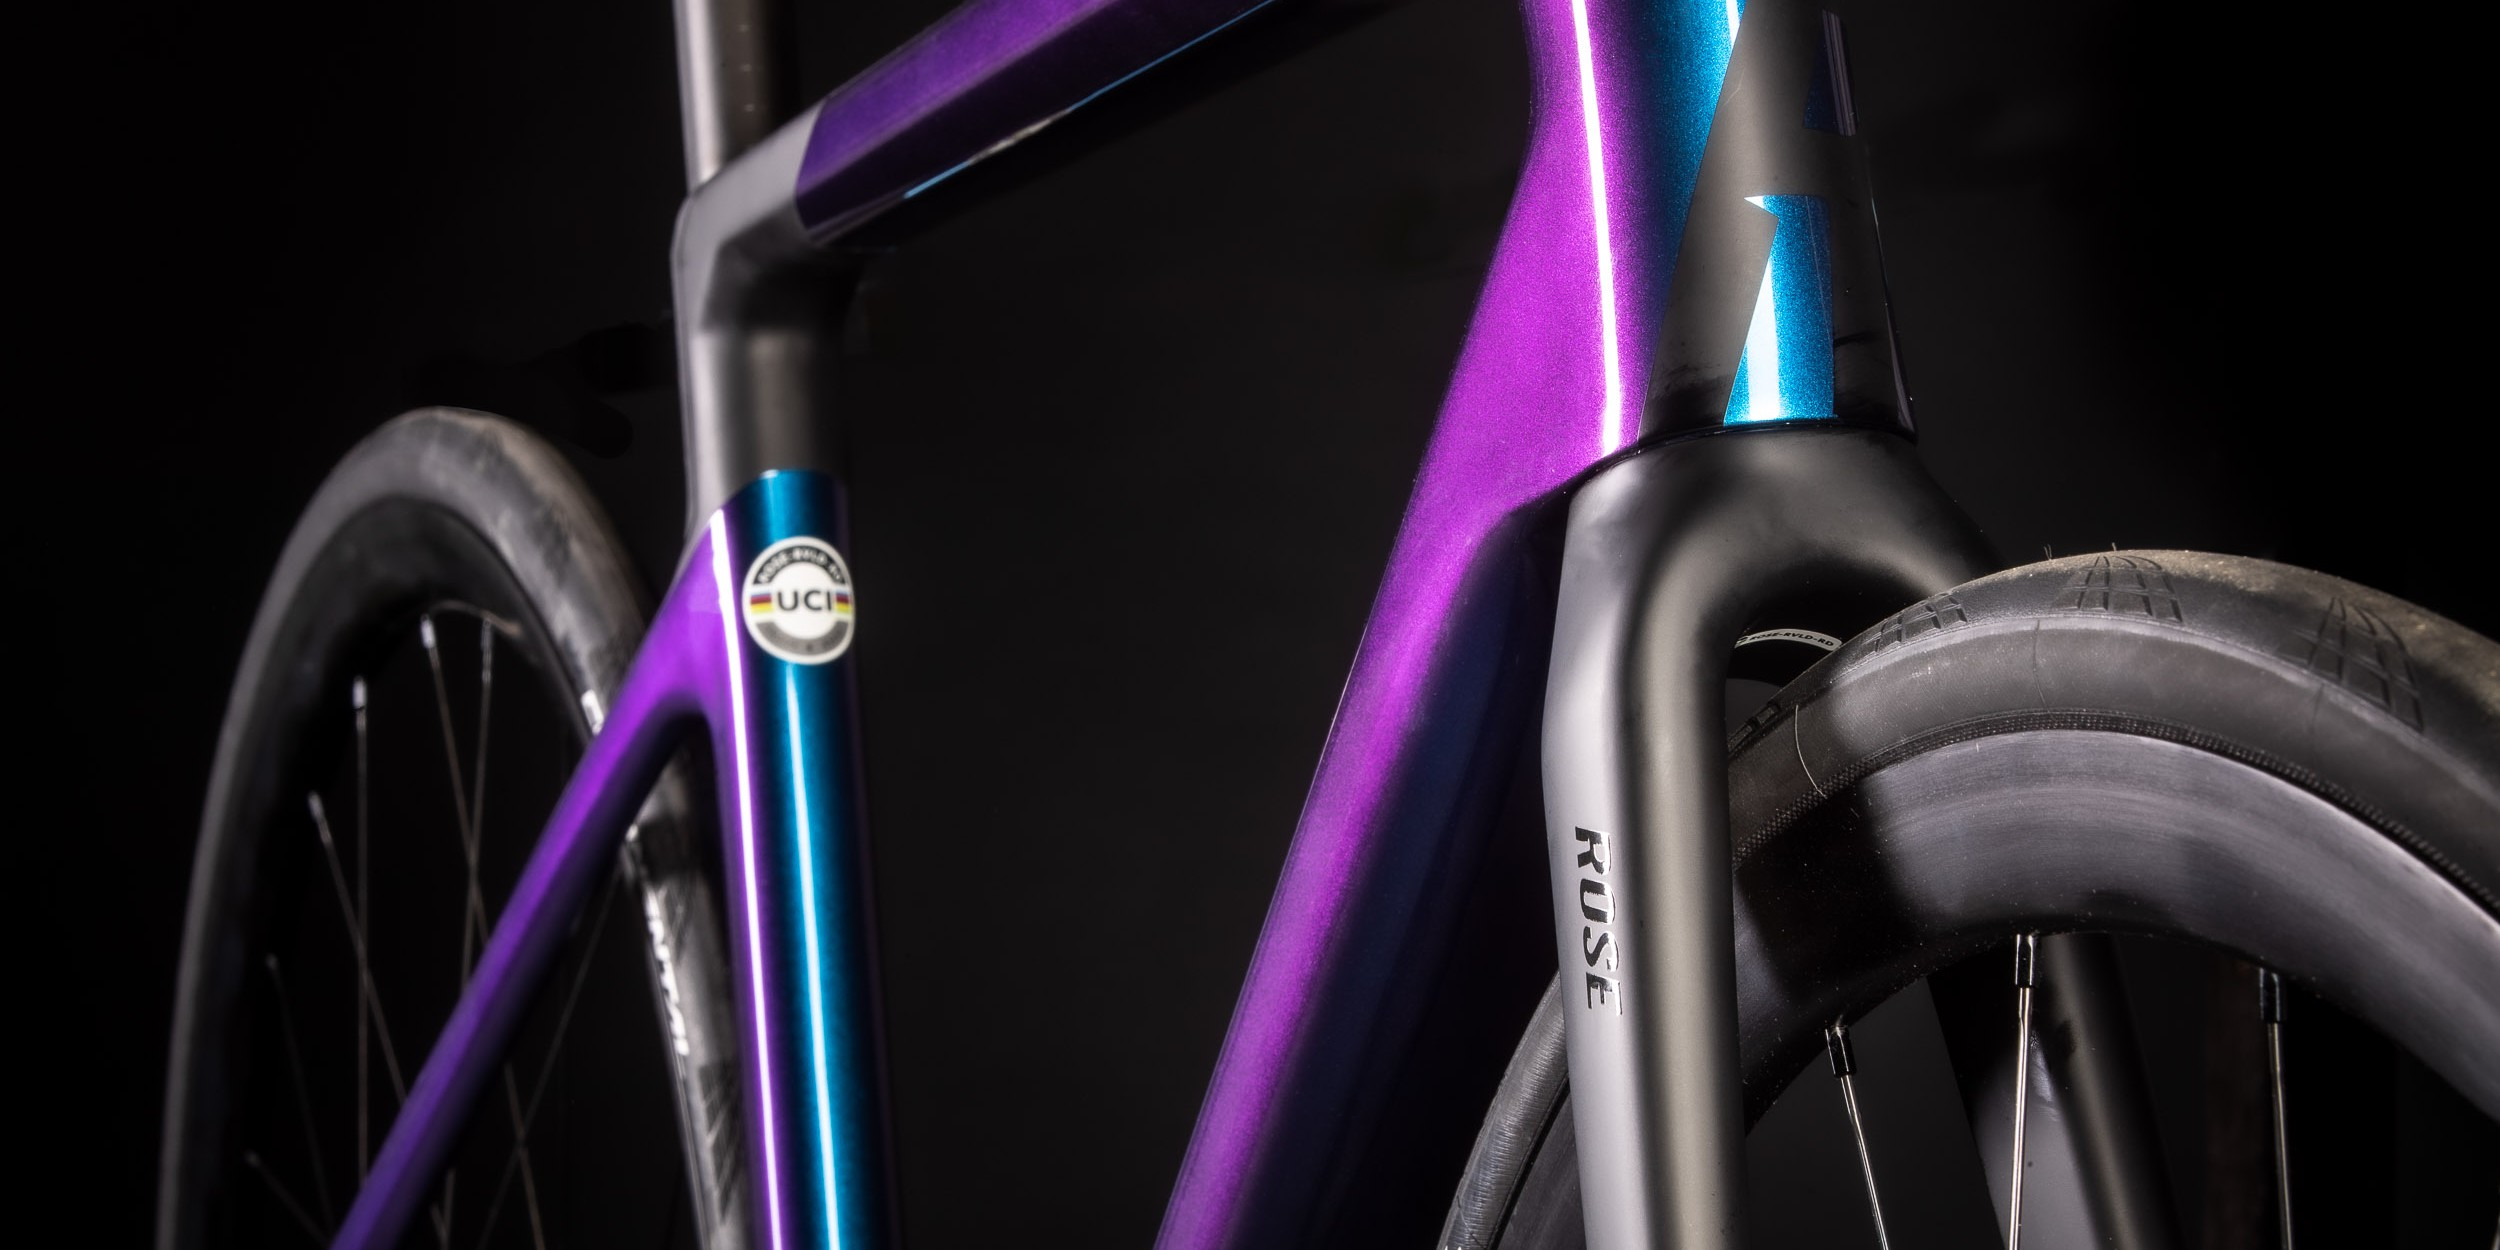 Rose Reveal Four Disc Force eTap AXS Showroom